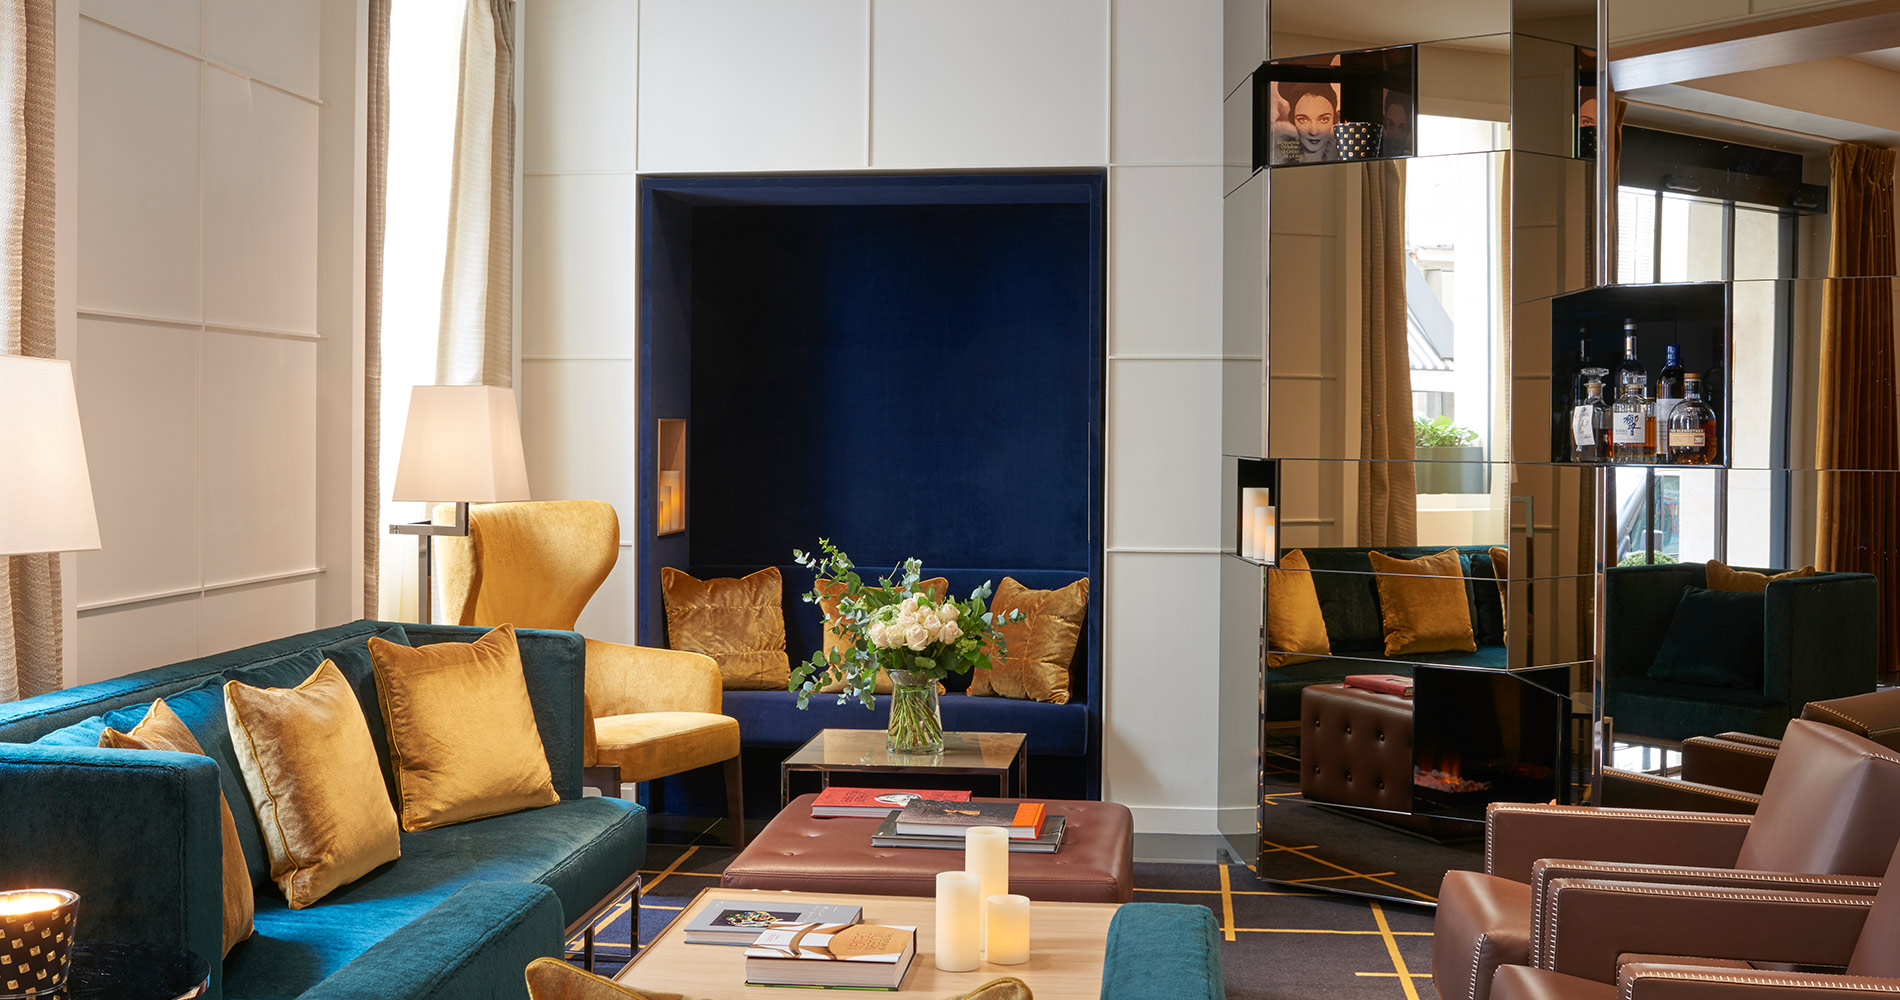 Charming property hotel Opéra Richepanse 4 star Paris France living room